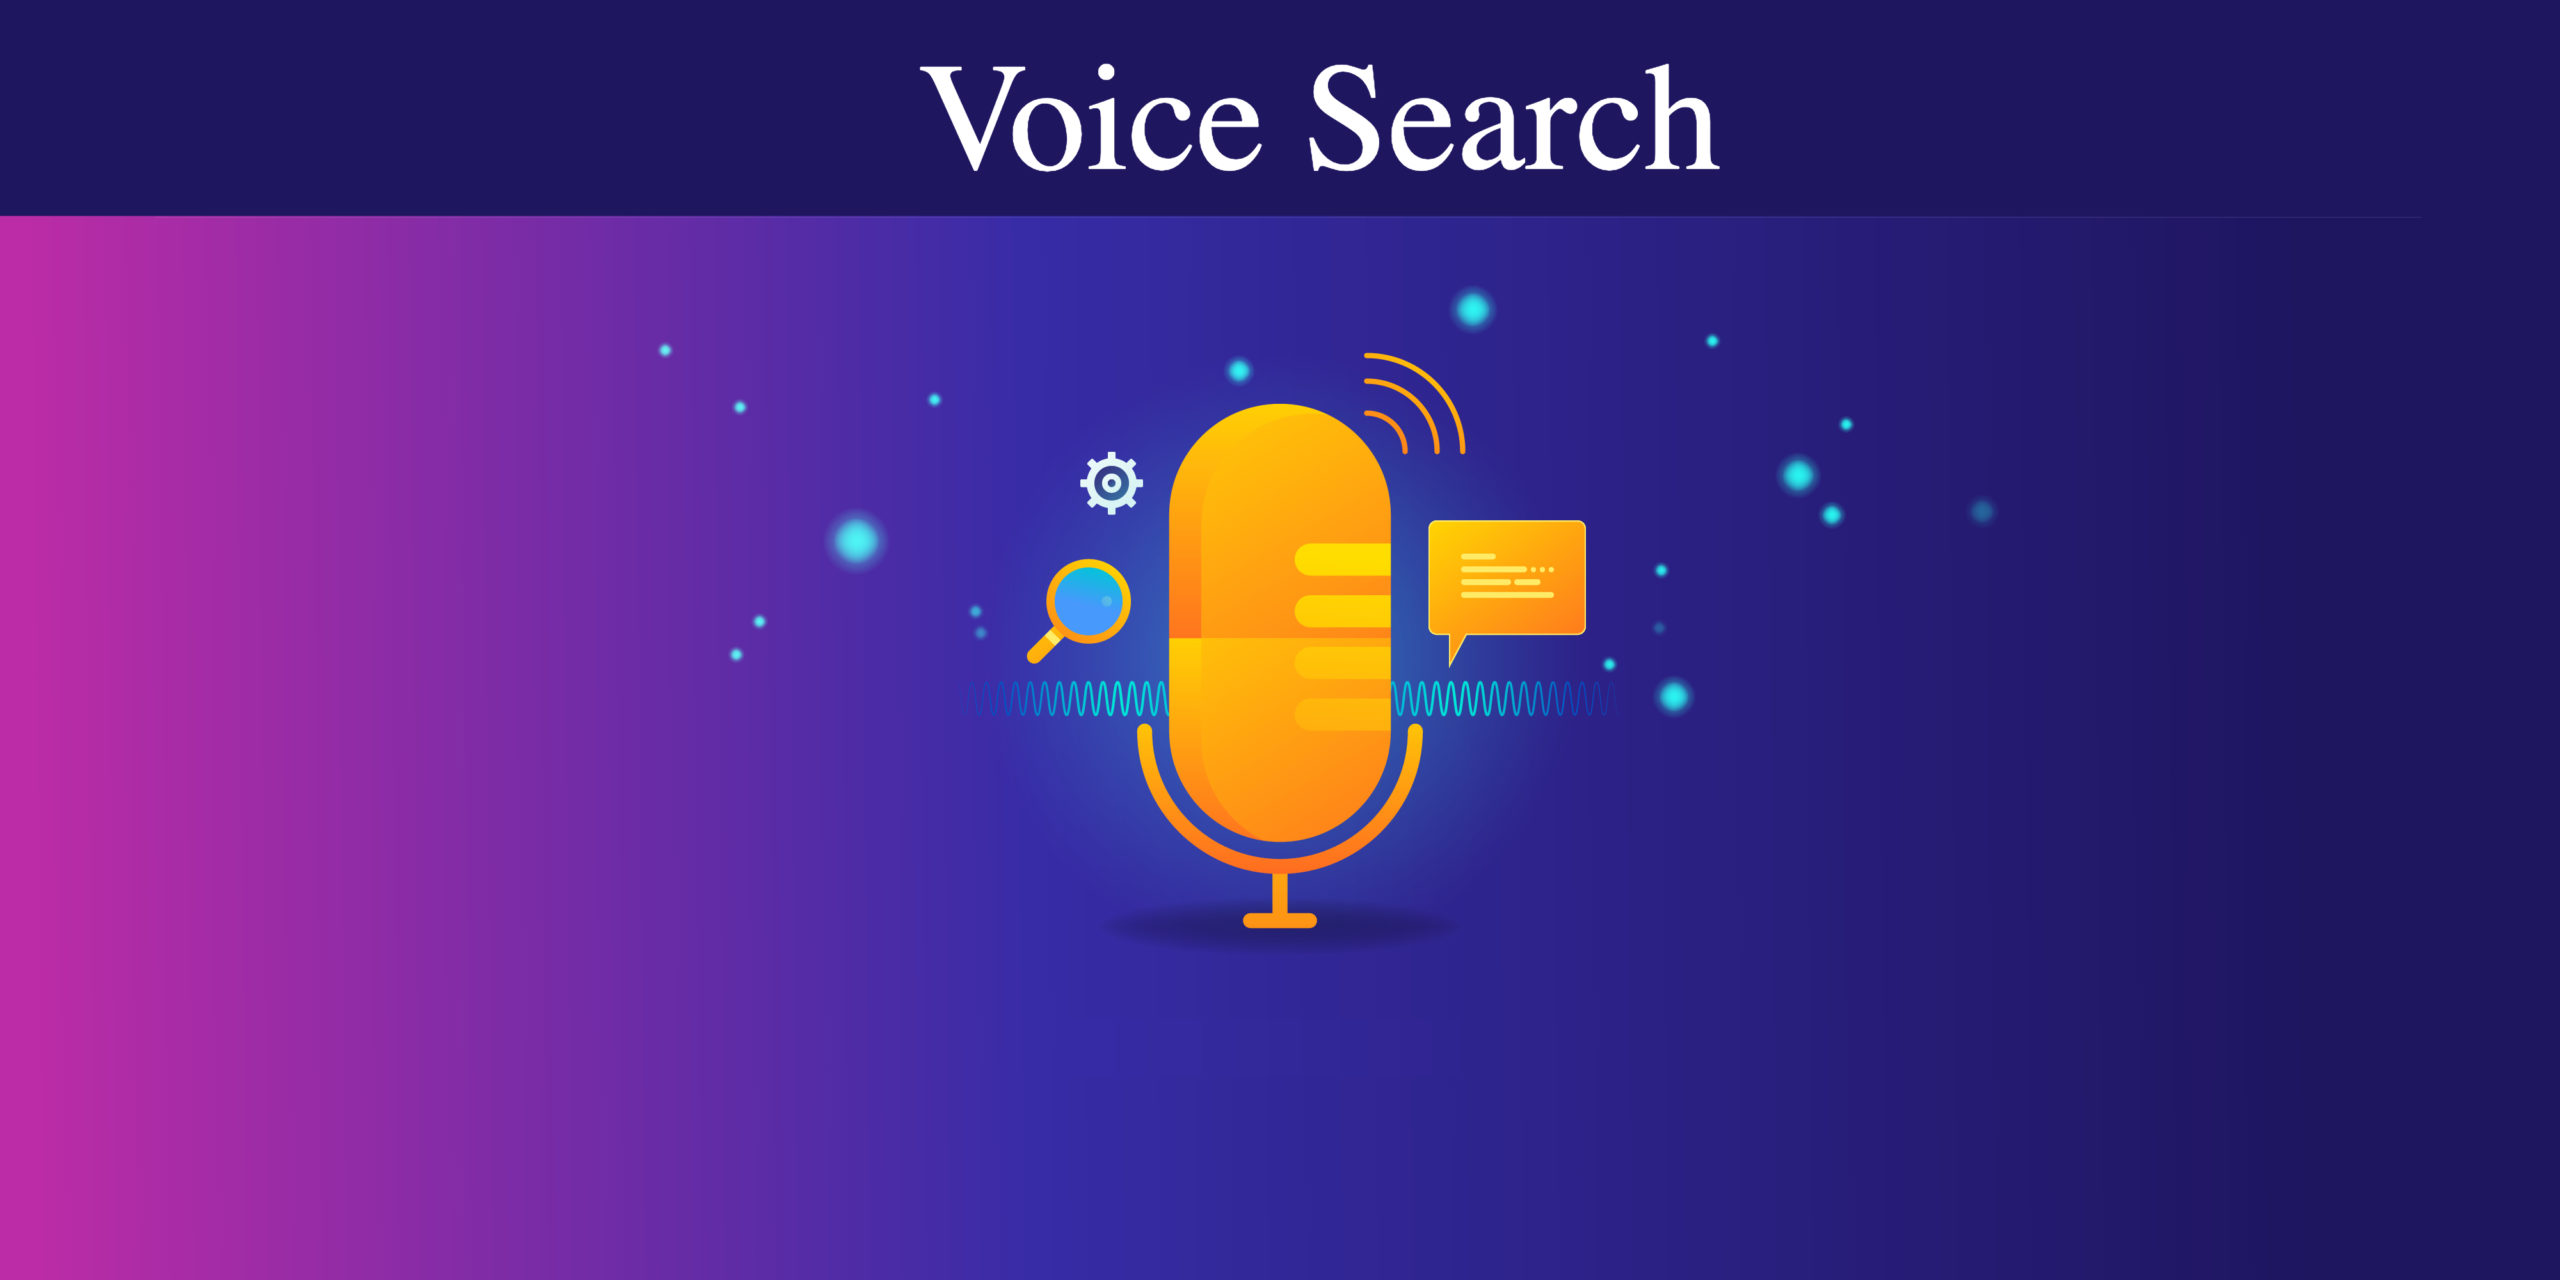 OptimizeContentForVoiceSearch